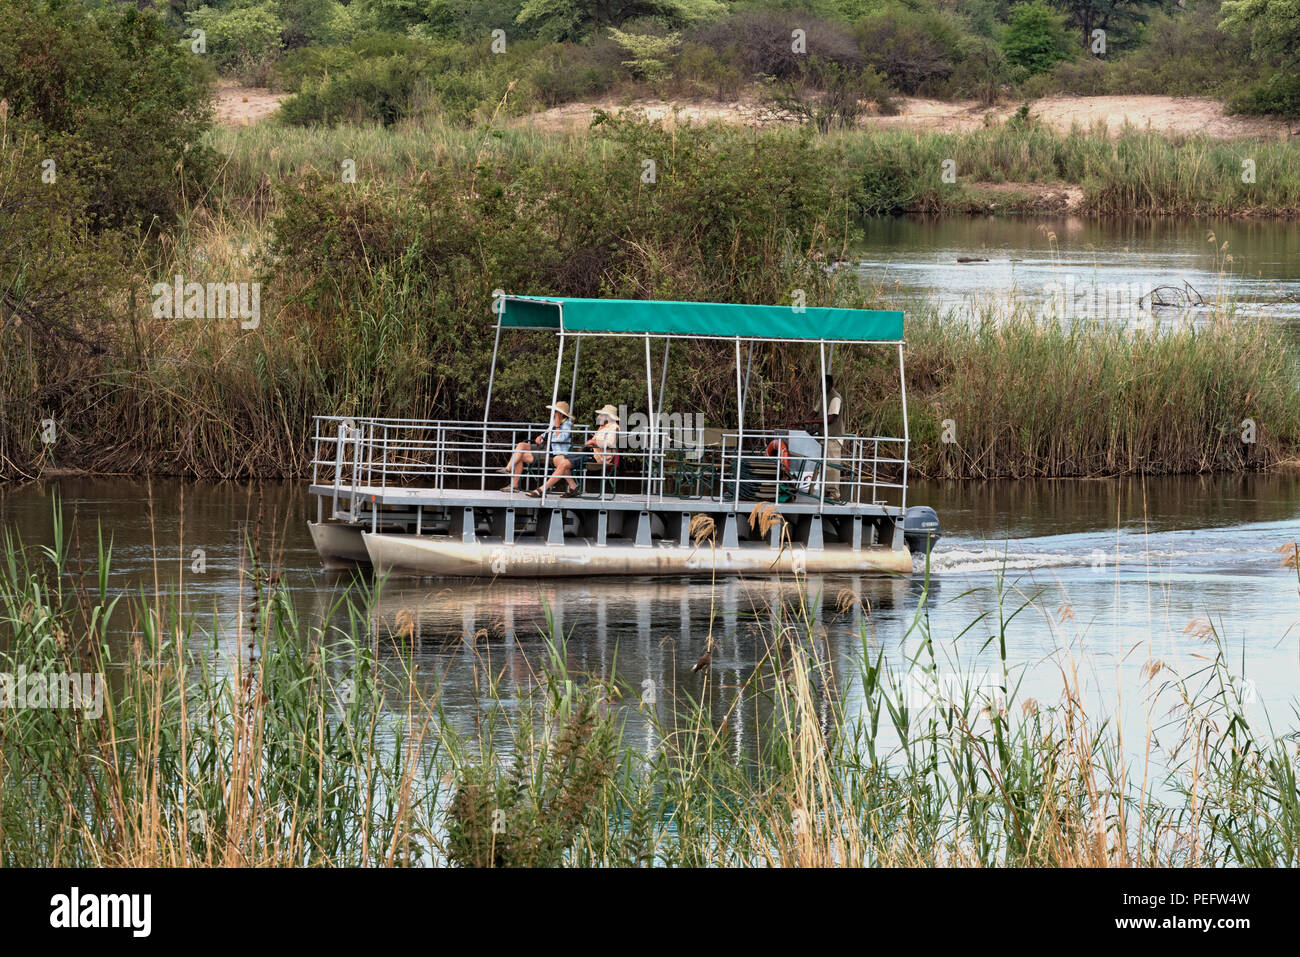 tourist boat on the okavango river in namibia. - Stock Image